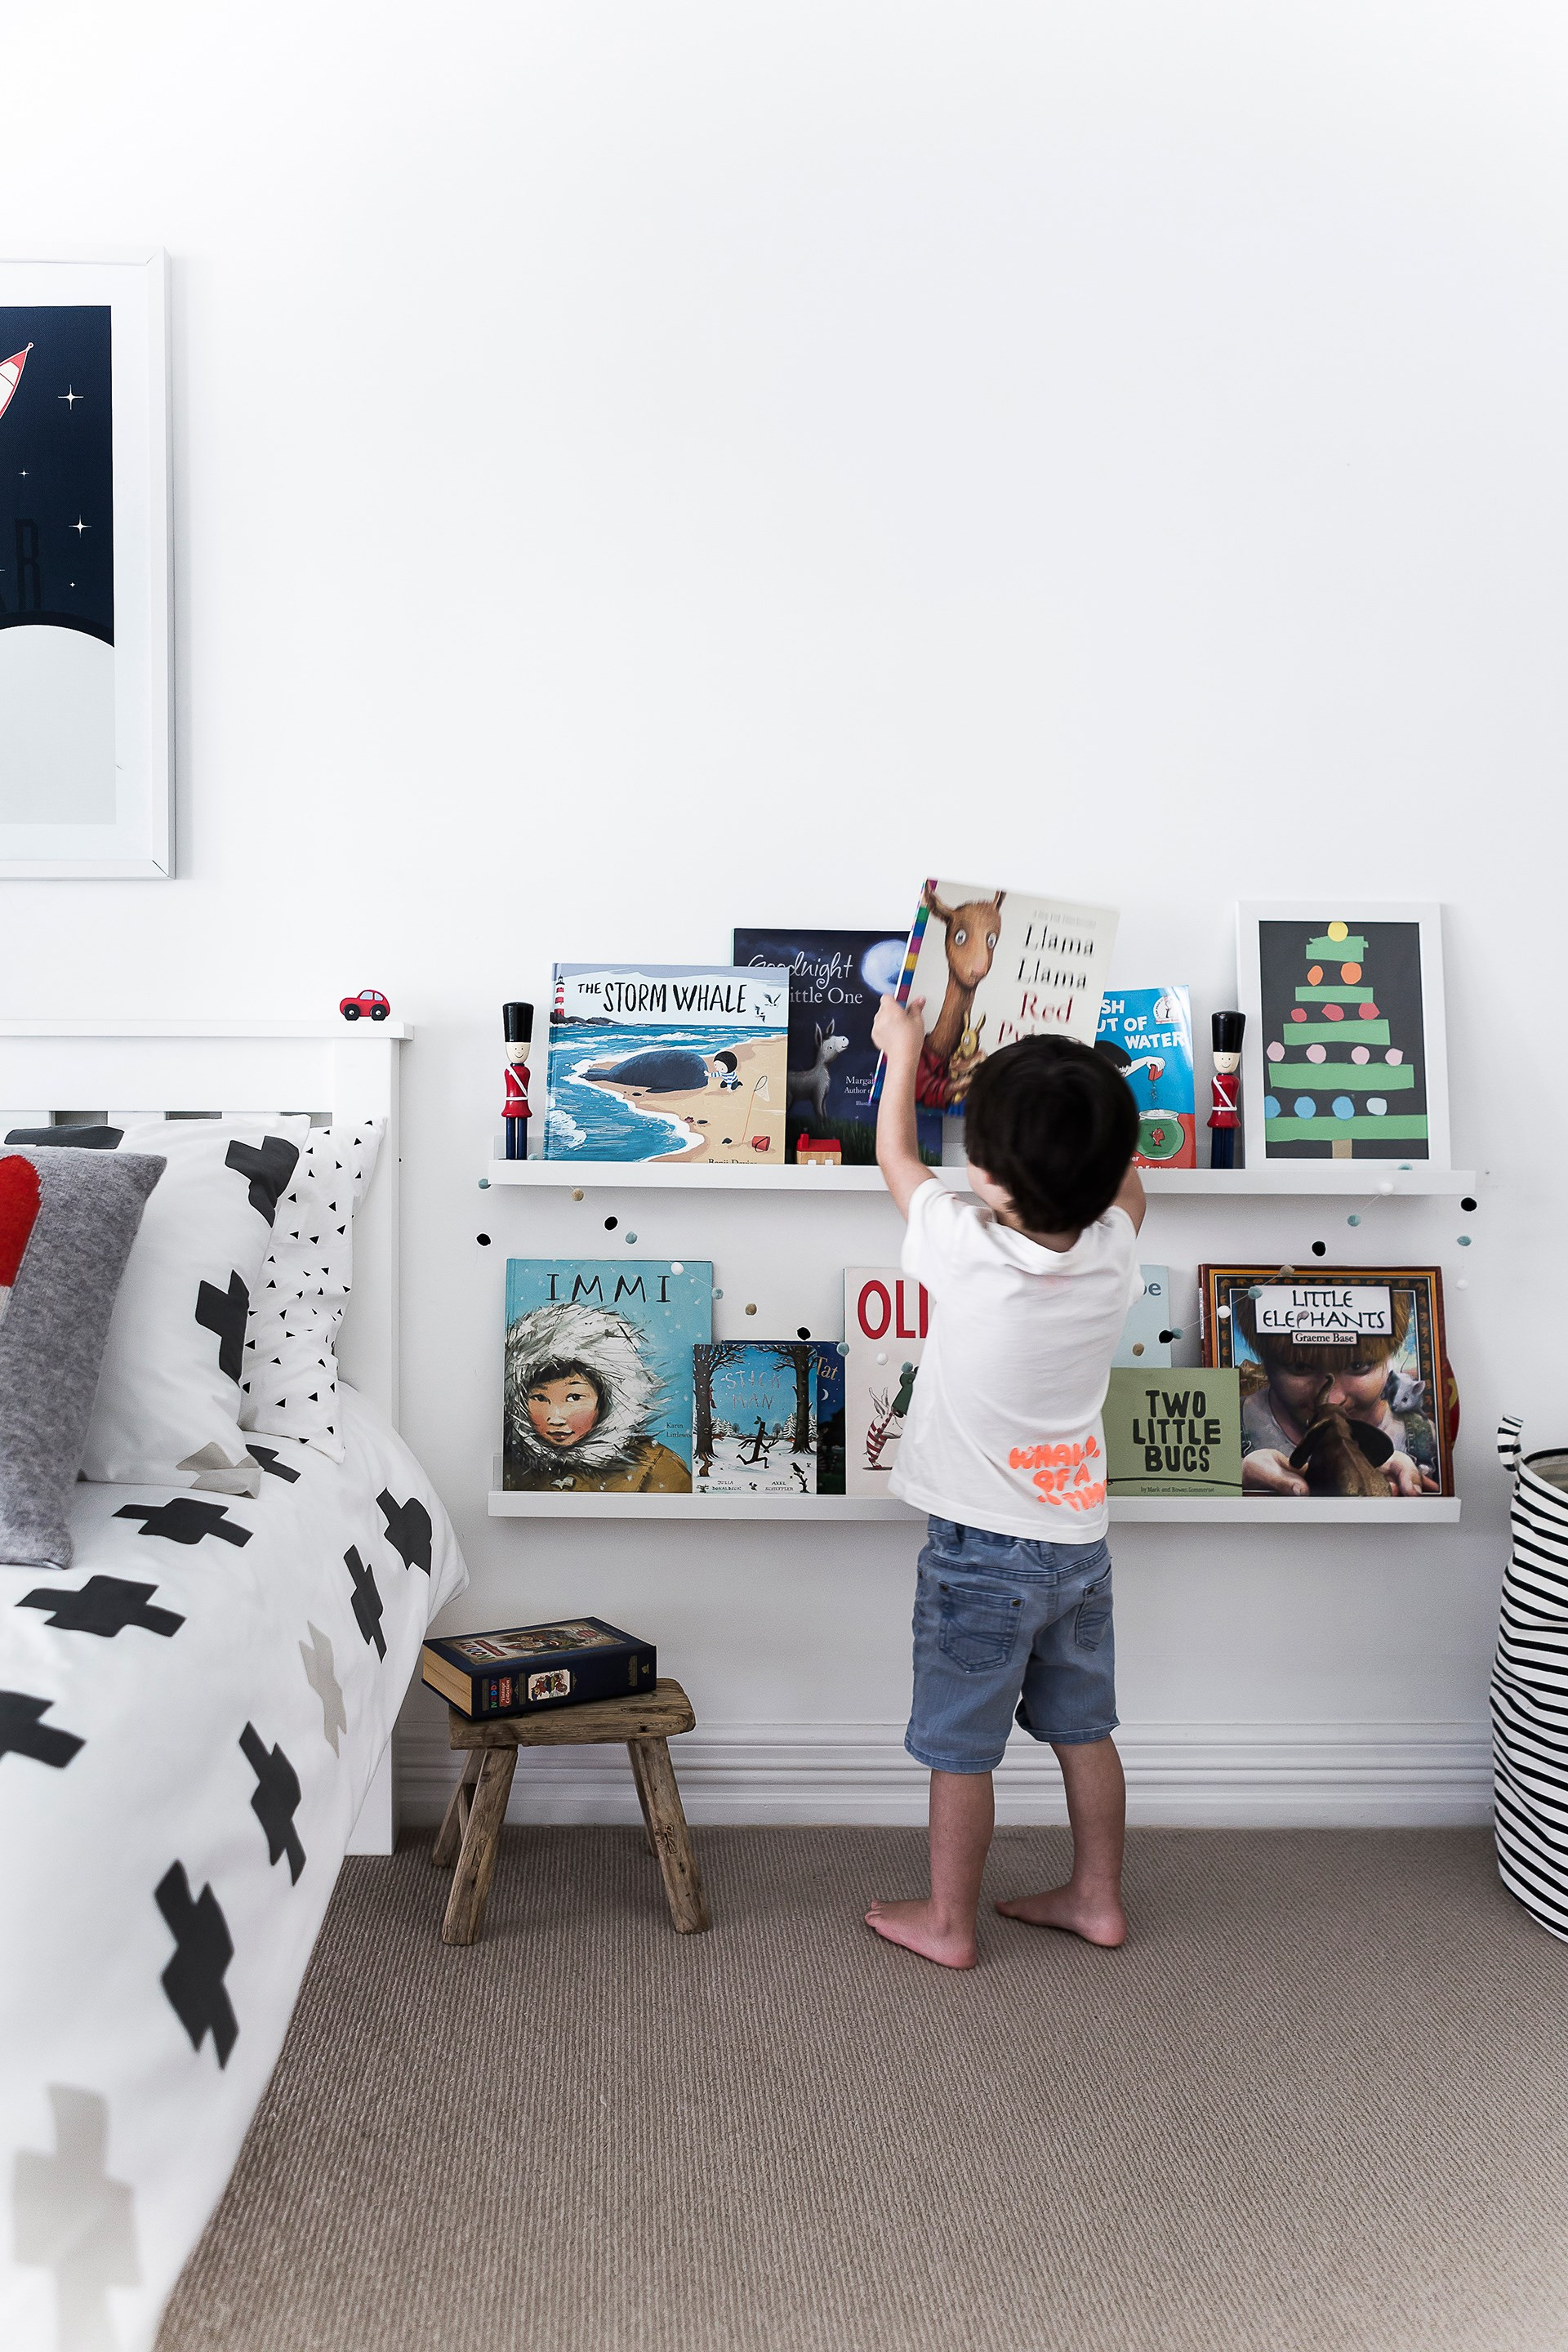 Teach kids to put toys away as they play to help keep clutter to a minimum.